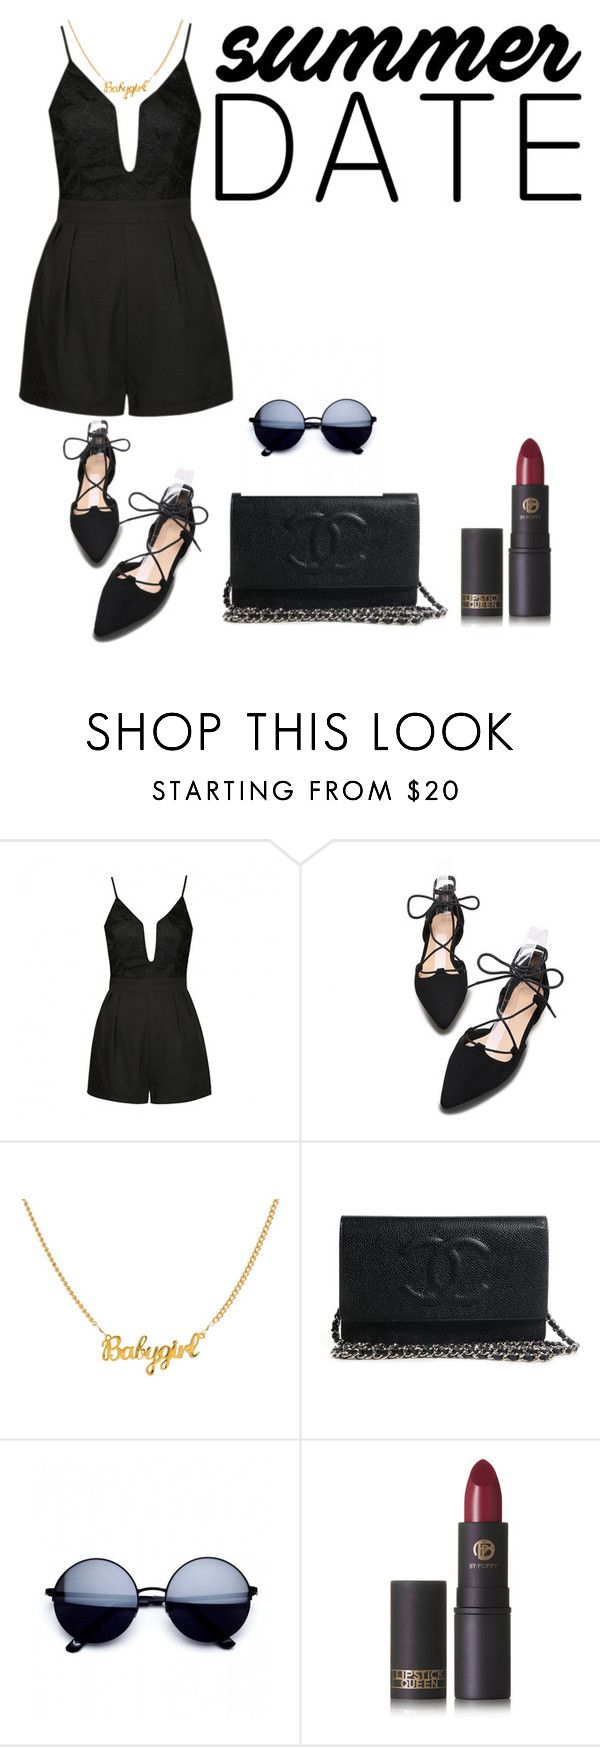 """"" by saraprifti on Polyvore featuring Ally Fashion, Lipstick Queen, statefair and summerdate"